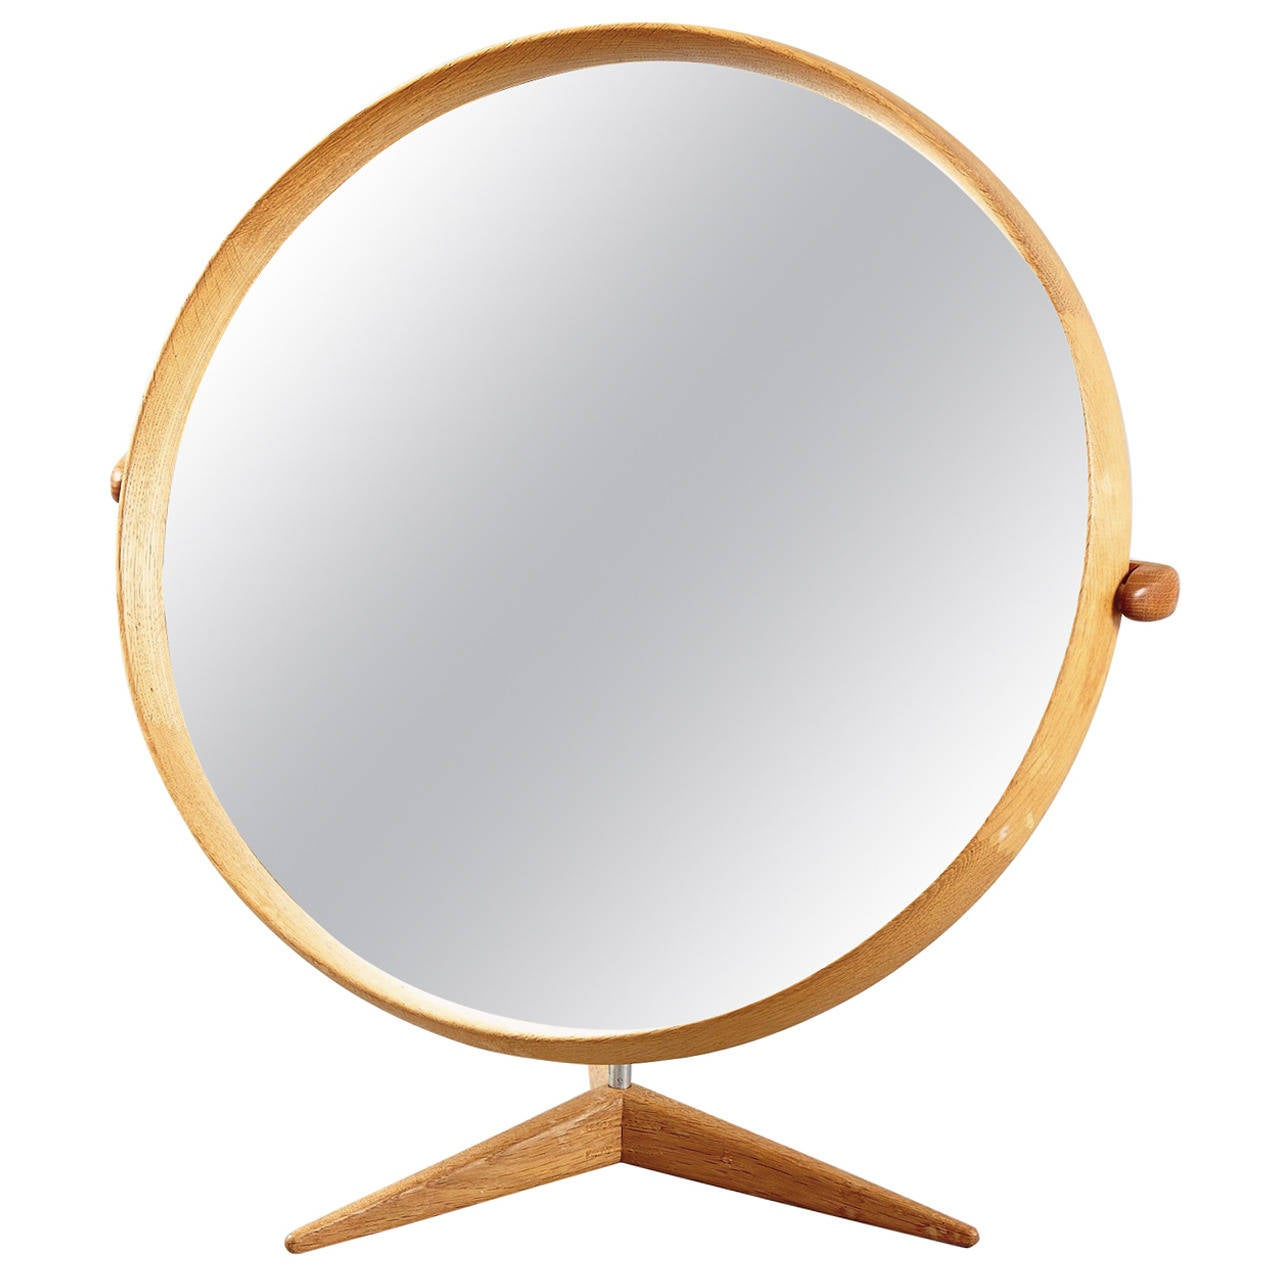 Table Mirror by Uno & Östen Kristiansson for Luxus of Sweden, 1960s